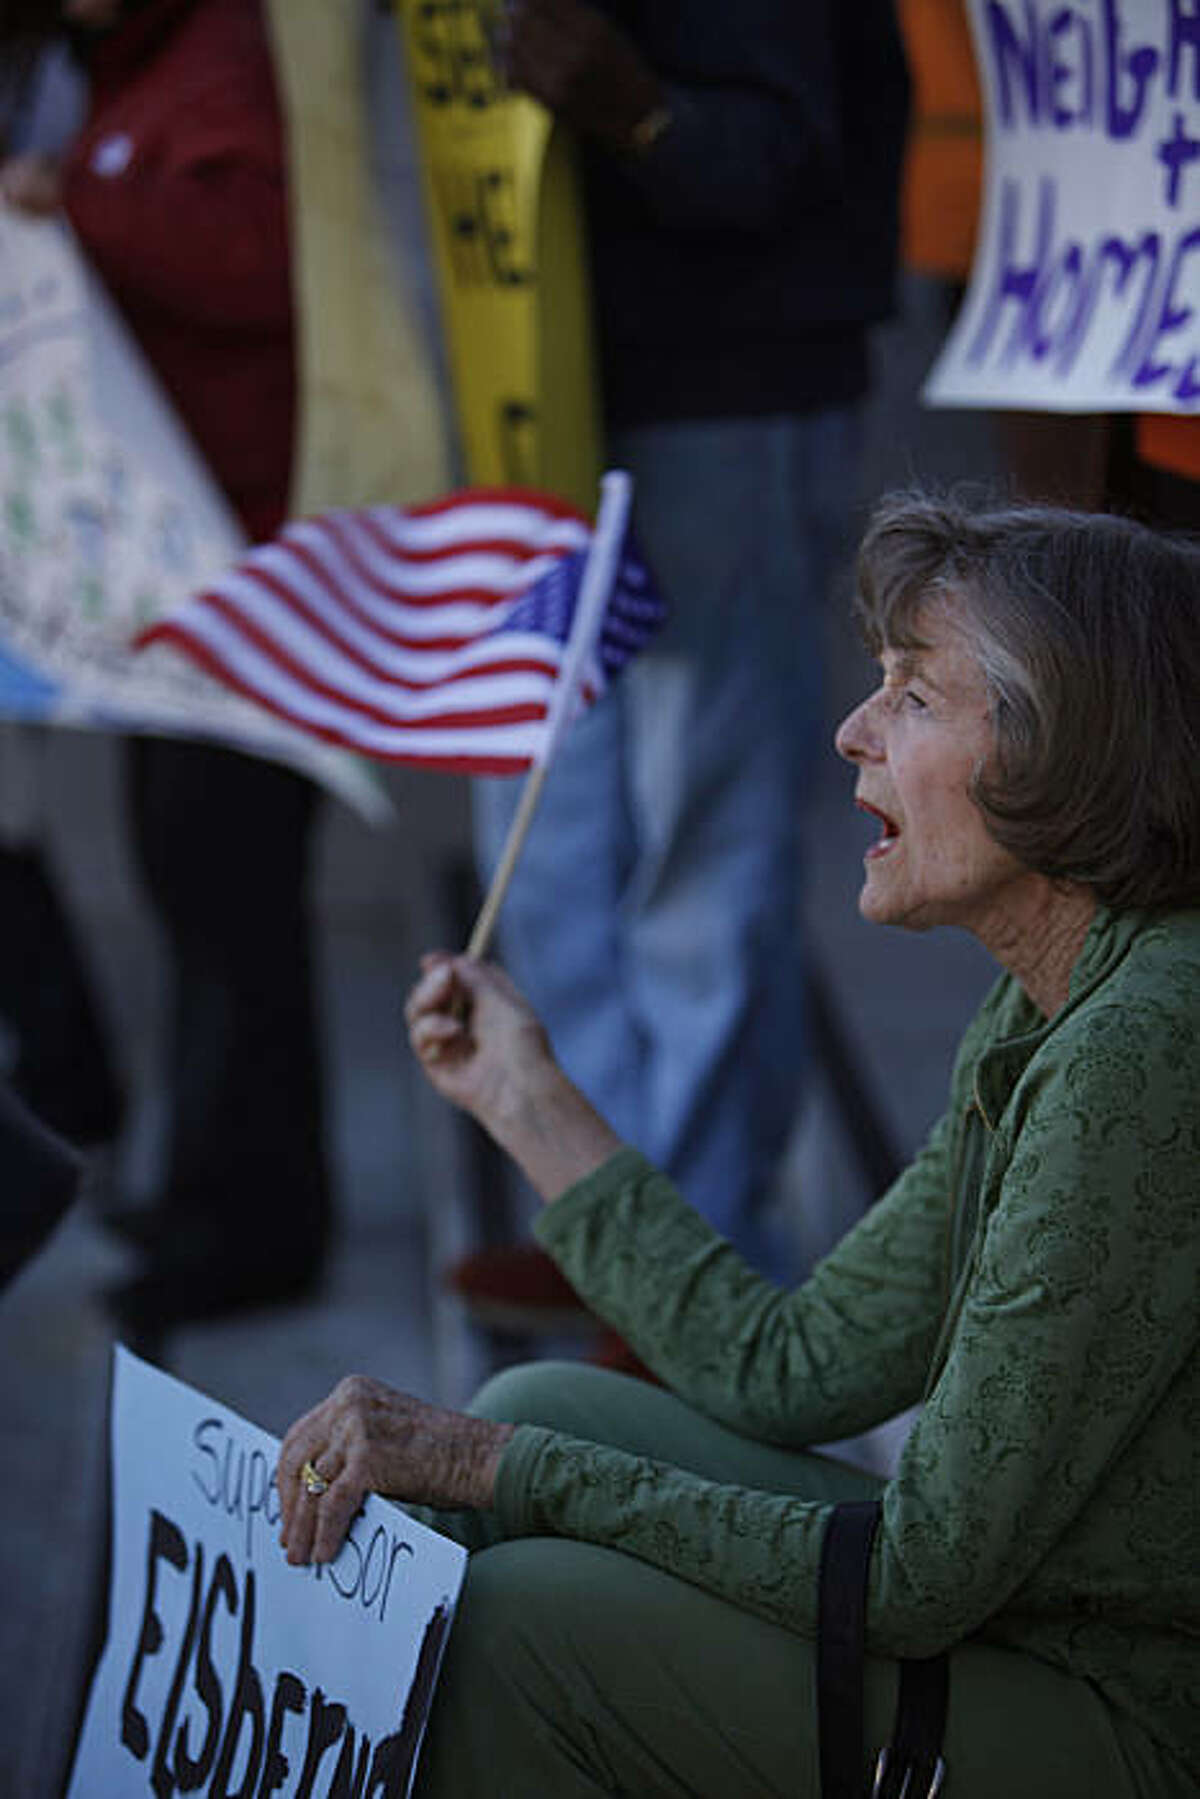 Genevieve Callejo, who has been a resident for 41 years of Parkmerced, waves an American flag as she sits on the steps of City Hall to protest the development project proposed for Parkmerced along with others on Thursday, February 10, 2011 in San Francisco, Calif.